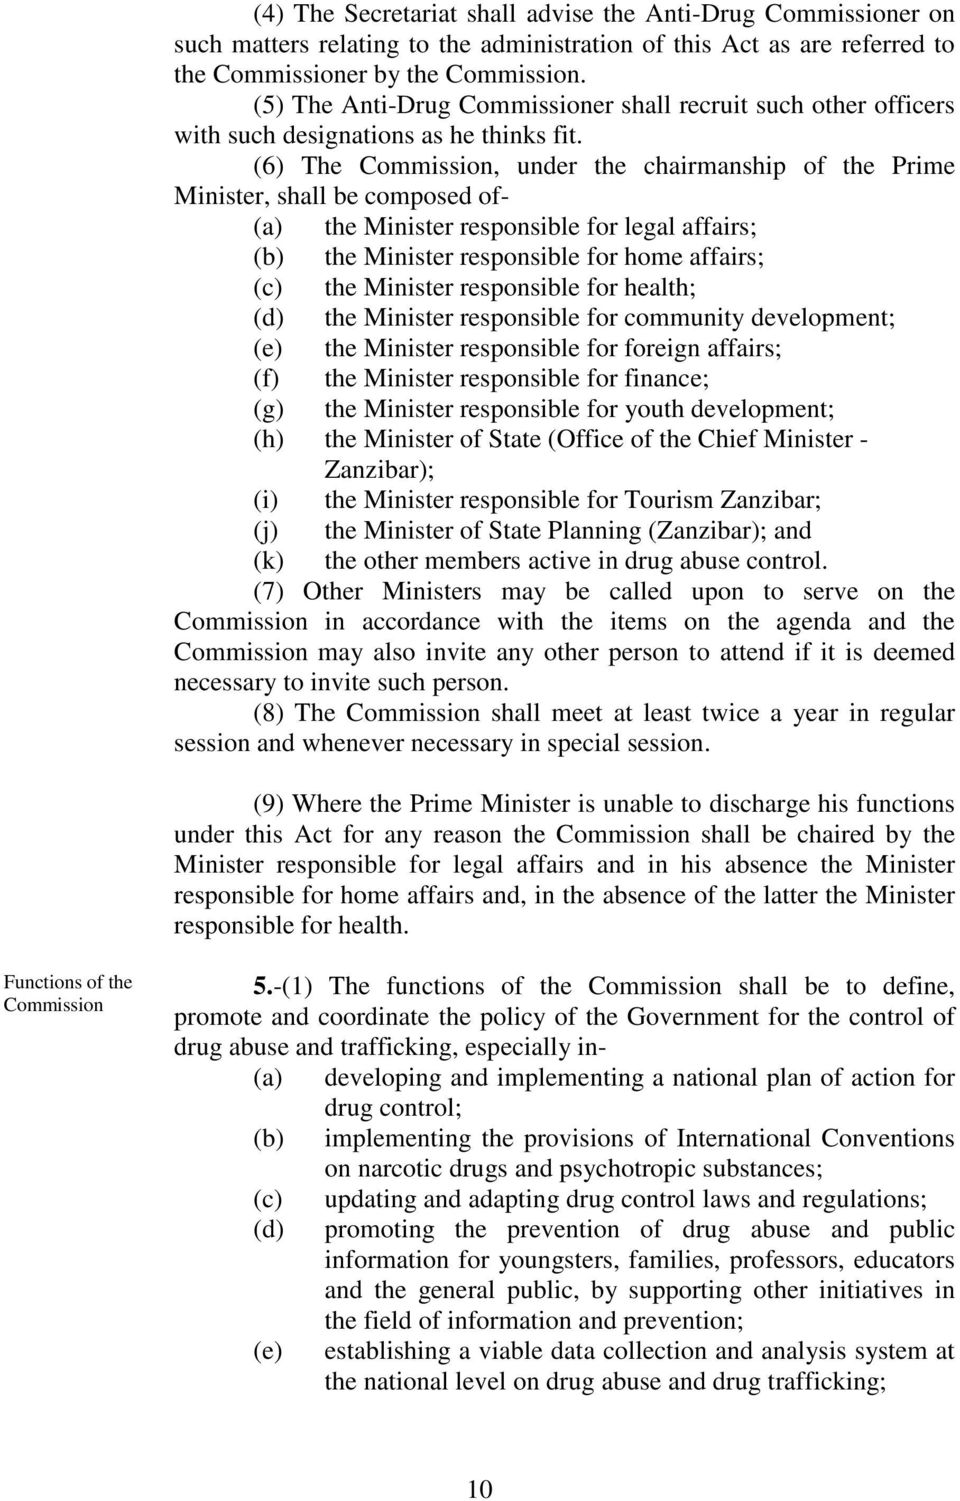 (6) The Commission, under the chairmanship of the Prime Minister, shall be composed of- (a) the Minister responsible for legal affairs; (b) the Minister responsible for home affairs; (c) the Minister